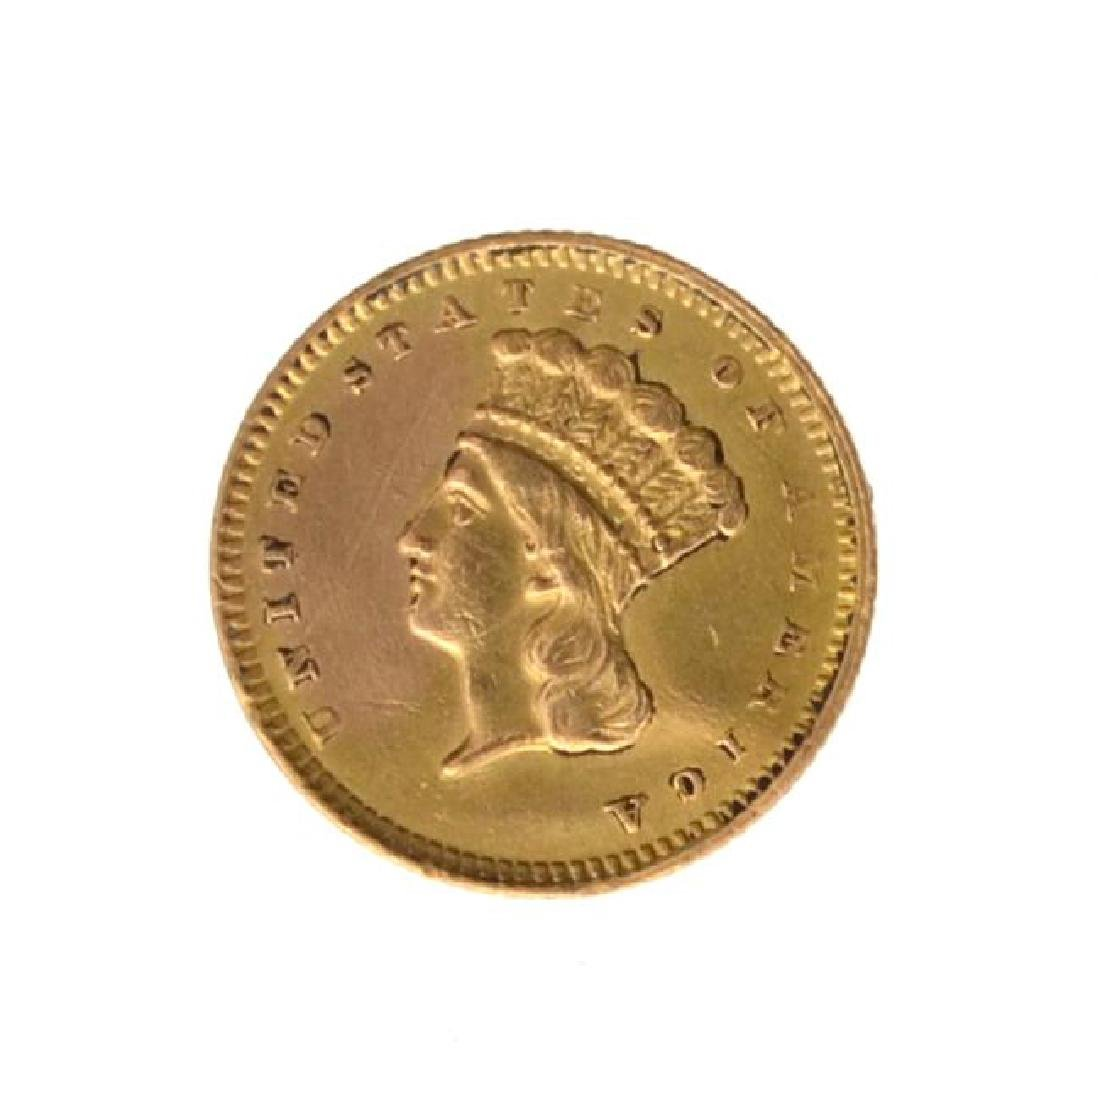 1857 $1 U.S. Indian Head Gold Coin - Great Investment